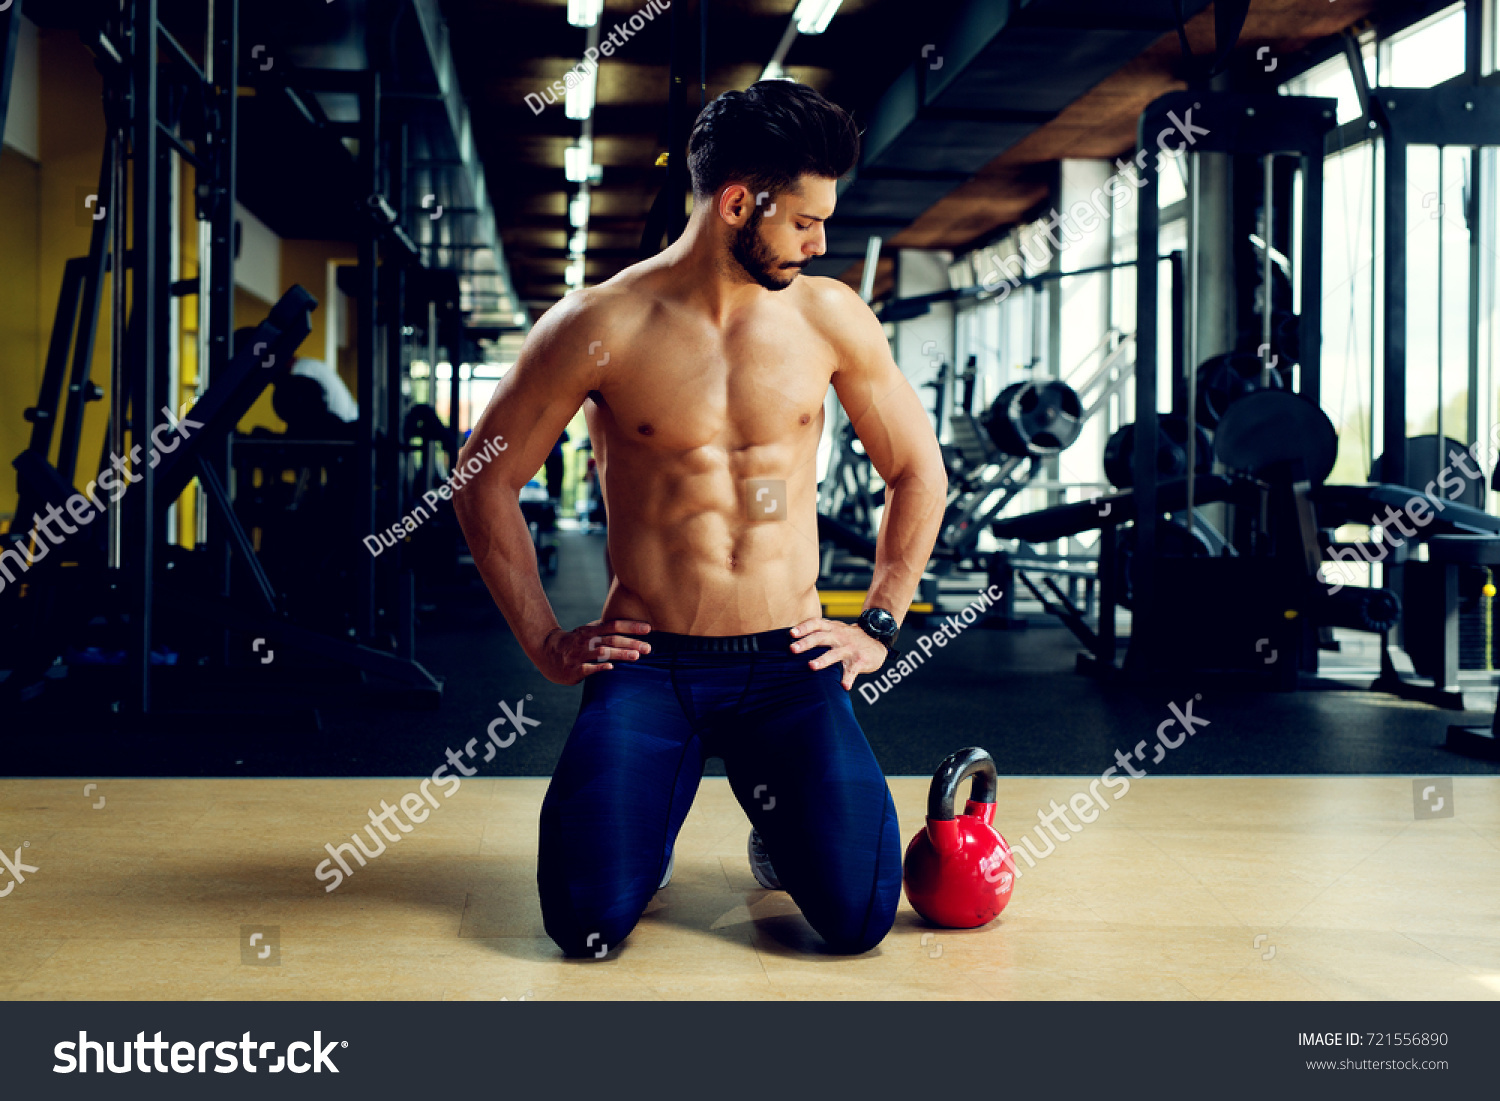 Kettlebell Bodybuilding Young Active Bodybuilder Exercising Kettlebell Gym Stock Photo